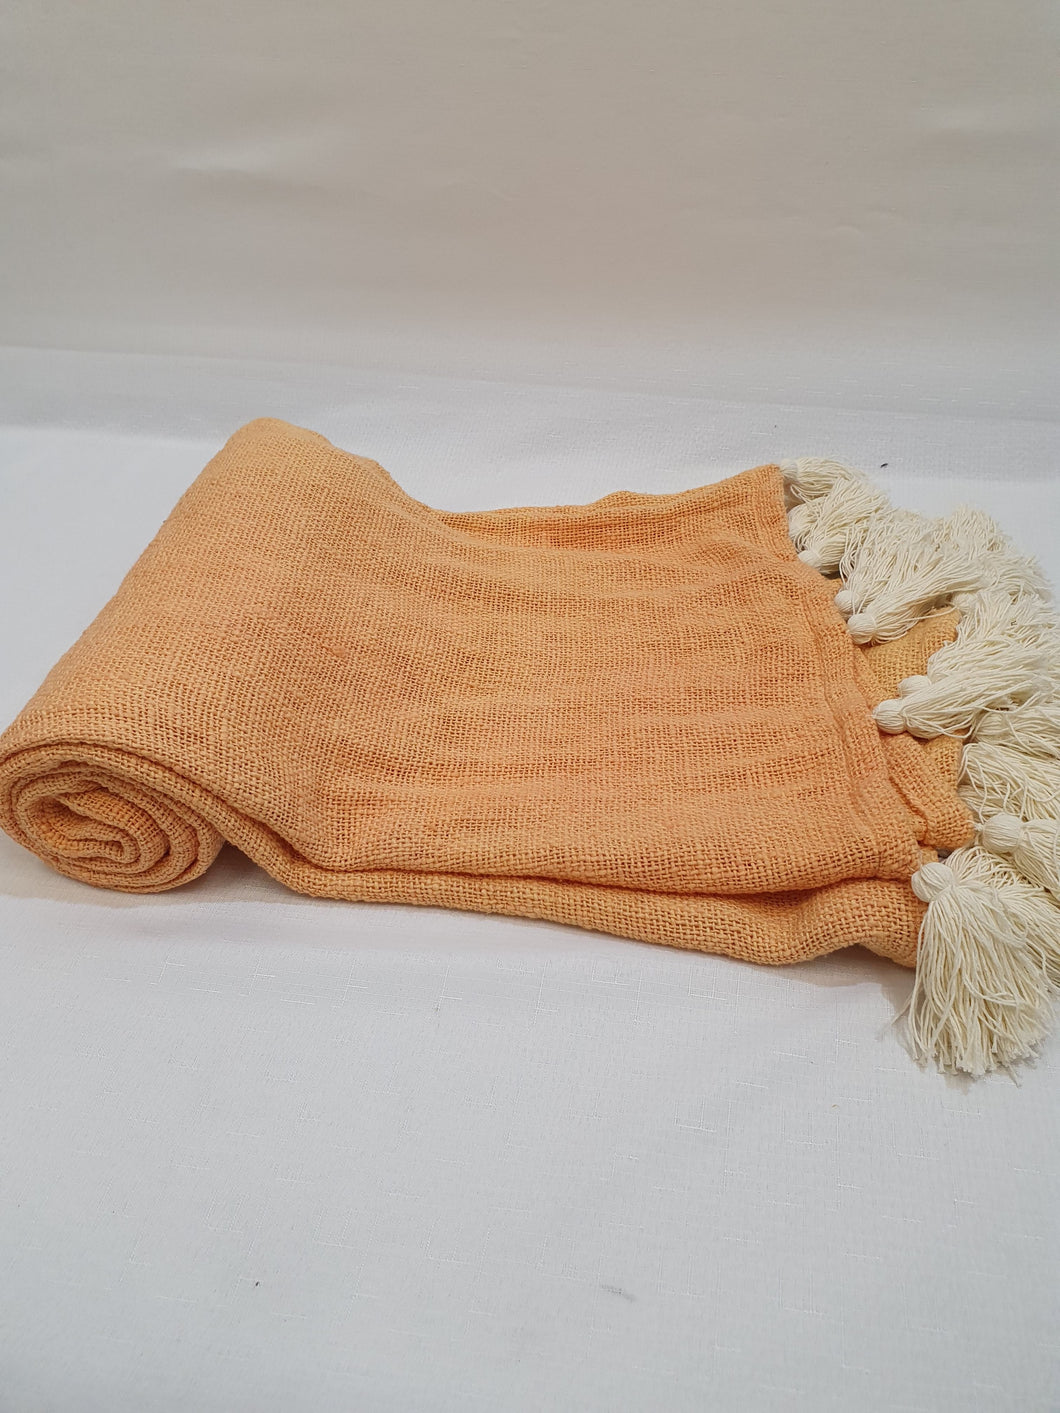 Soft orange throw with white tassel ends